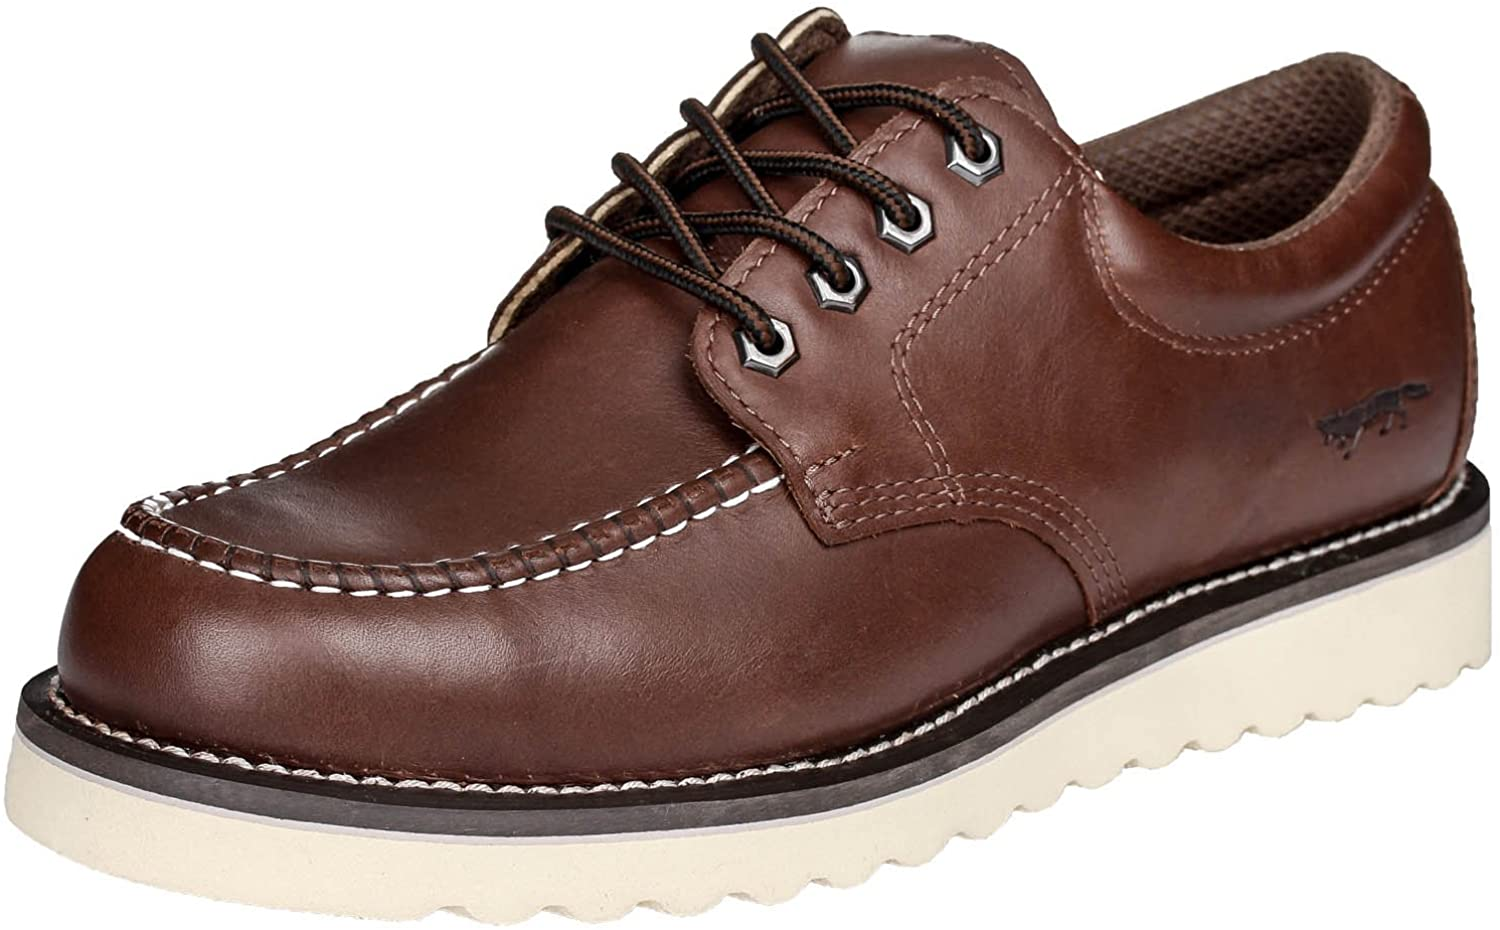 golden Fox Work shoes 4  Moc Toe Leather Men's Oxford for Construction & Casual